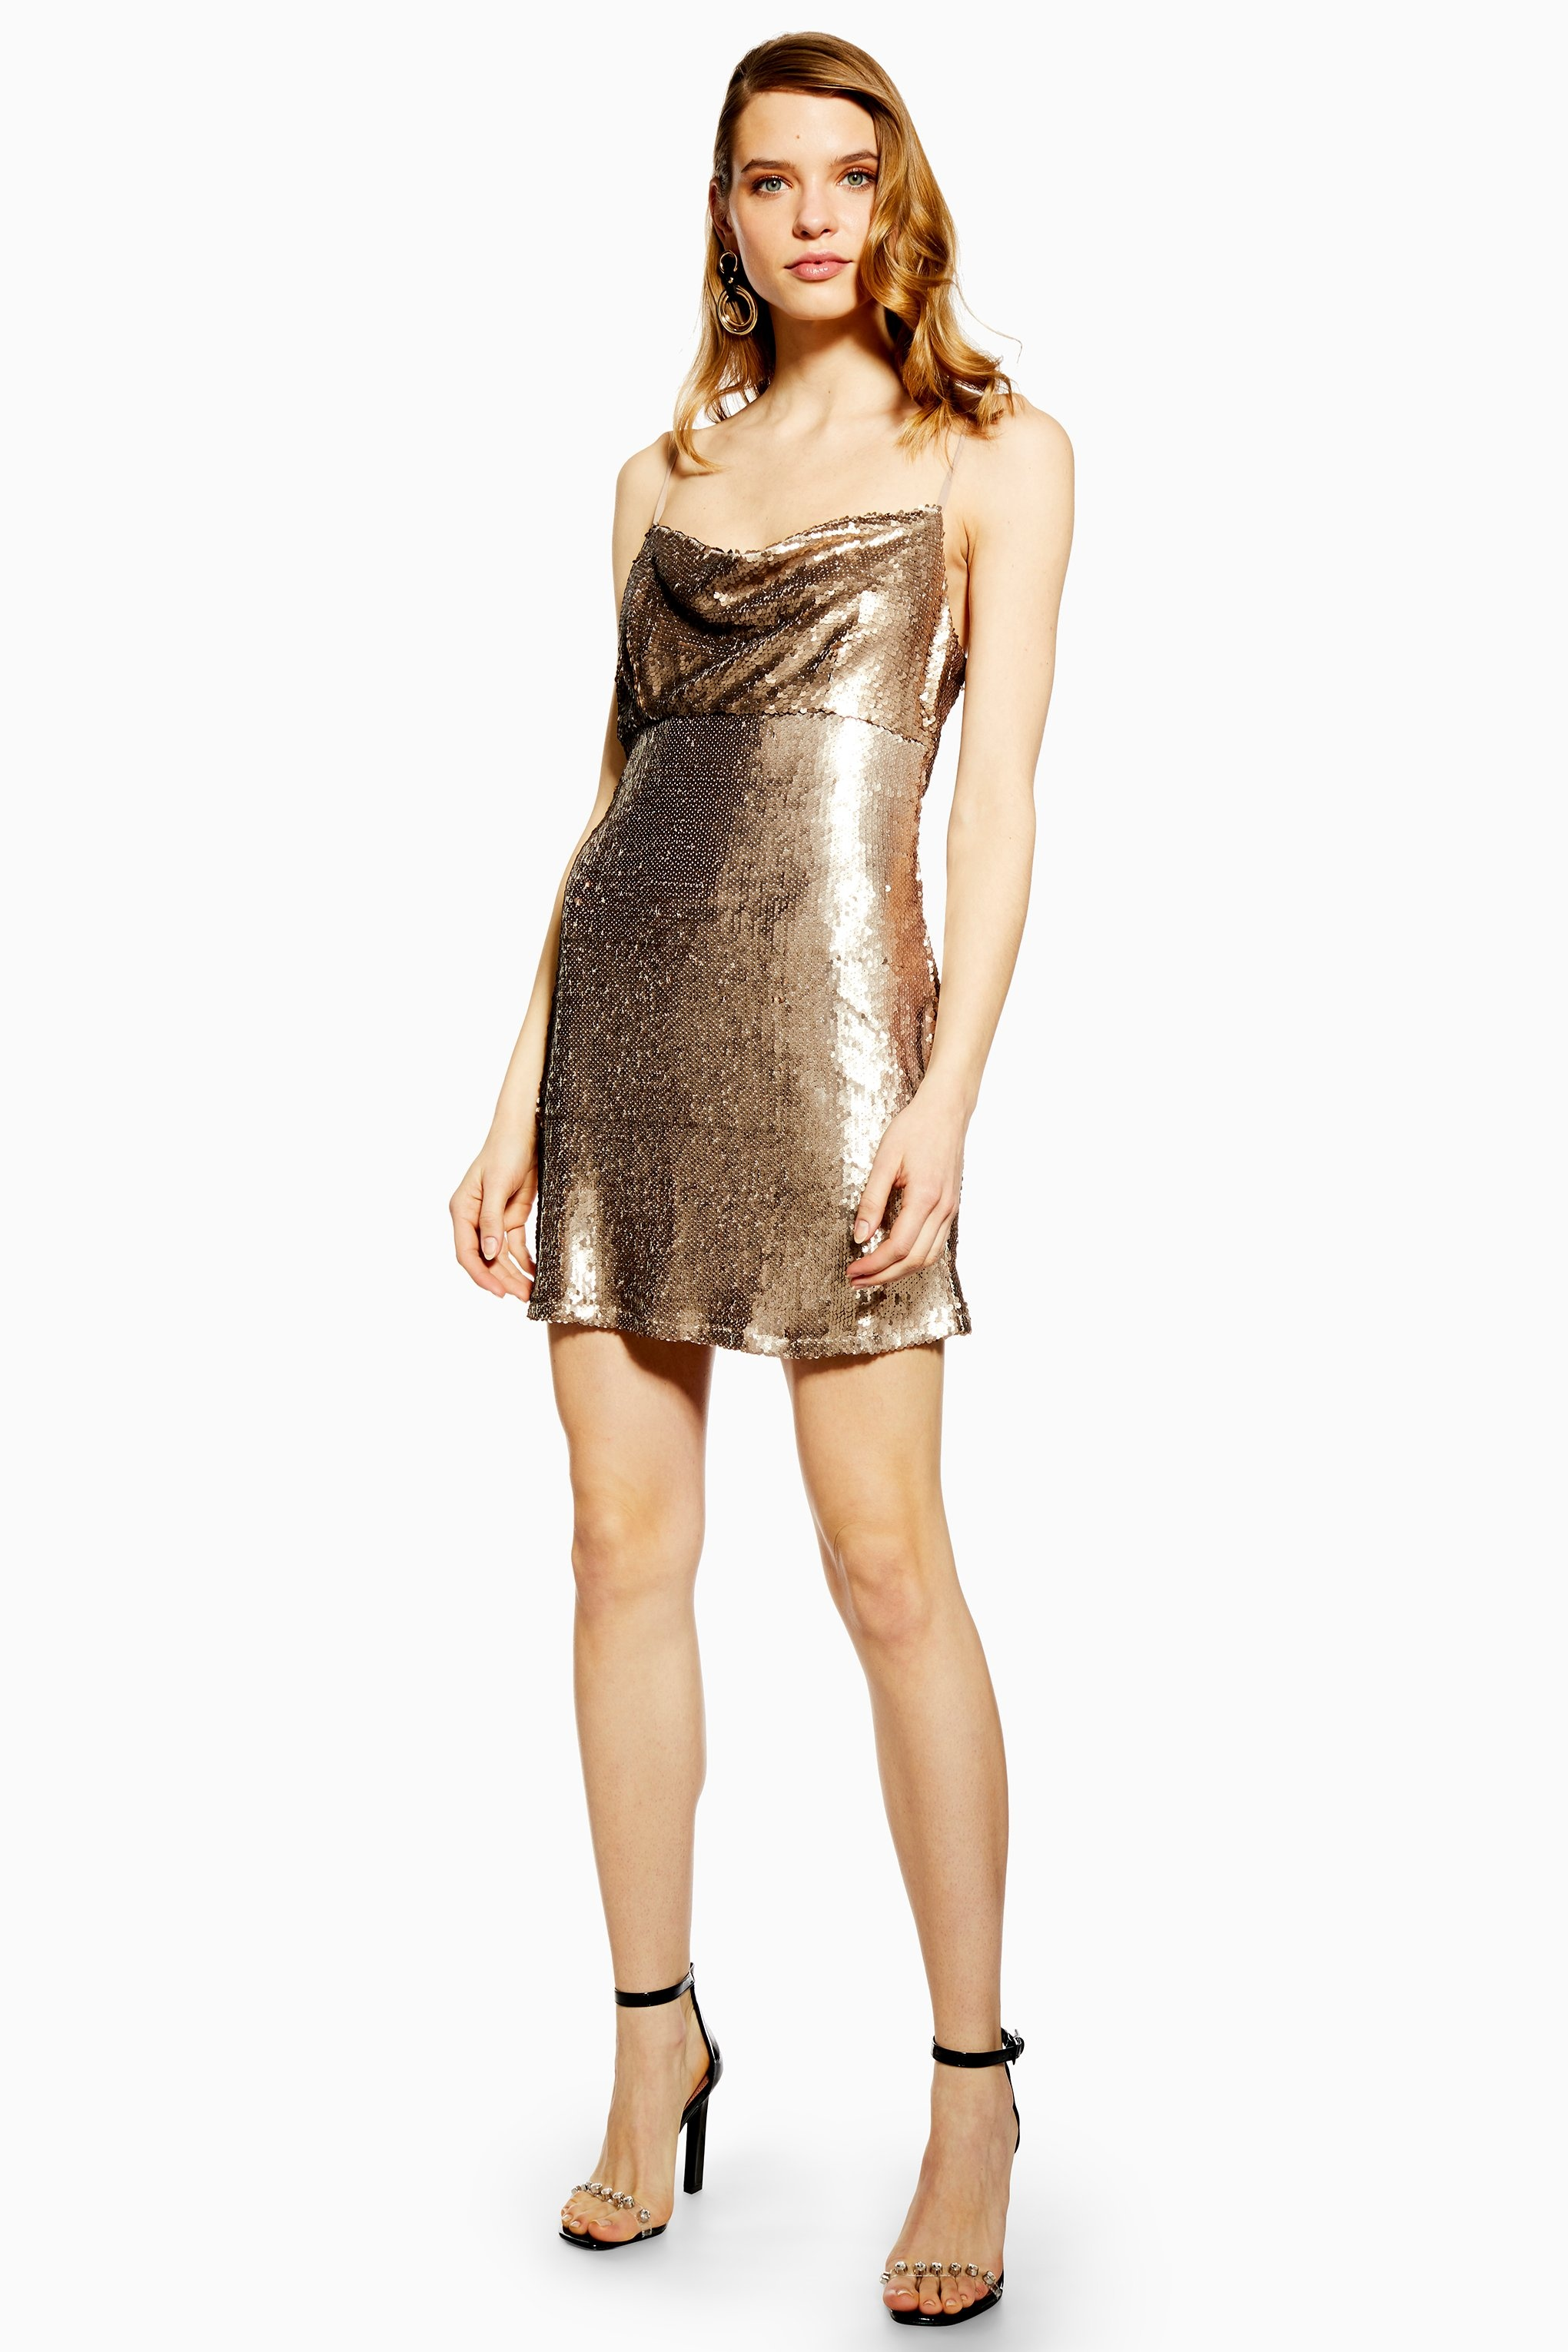 Move Closer - Champagne Morning Dress